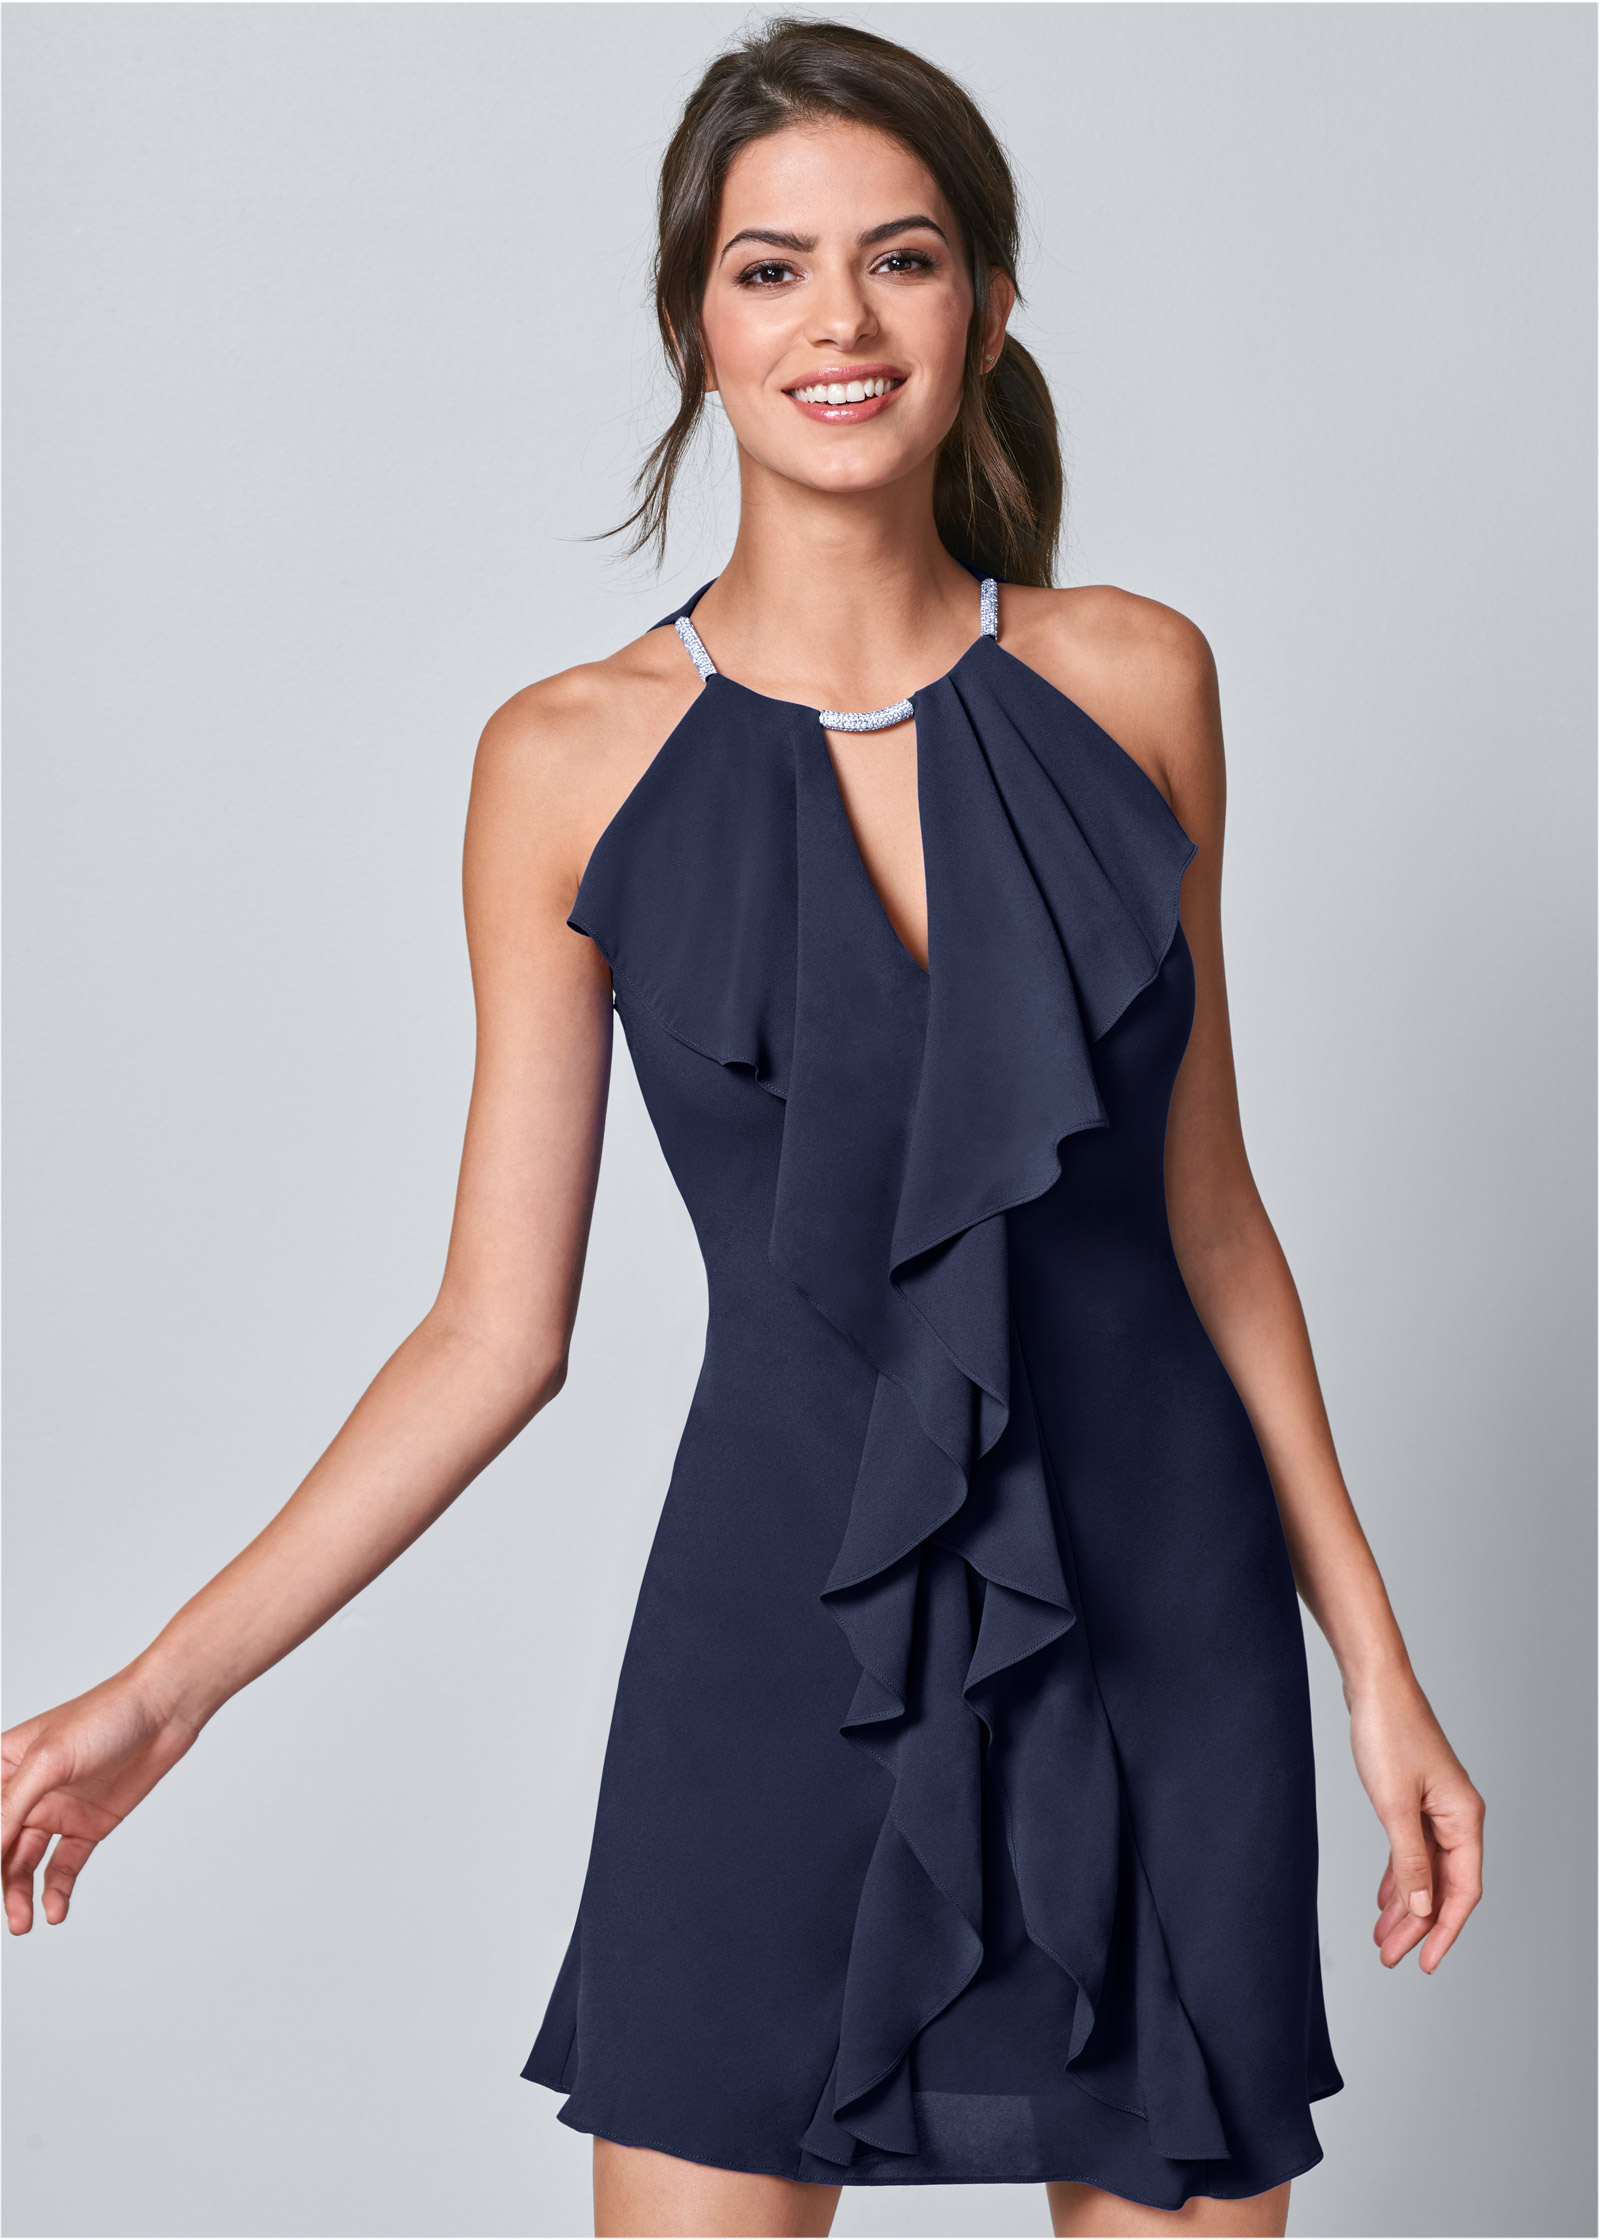 cheap bodycon dresses online,dress formal,asymmetrical chiffon and sequin party dress in black,party dress : dresses,cocktail dresses party dresses,cute cheap cocktail dresses,sleek prom dresses 2018,women dress formal,dresses fashion cocktail,blue chiffon summer dresses size 16 down to ankle,little black coctail dress,camoprint prom dresses,cocktail day wear dresses,cocktail dresses red and black,navy knee length one shoulder jersey dresses,cocktail dresses.ch,ms dressy lace buff colored cocktail dresses,cockteil dresses online,tall prom dresses 2018,gown dresses for women,long formal dresses for women,cocktail dresses buy online,affordable prom dresses mesh,cheap black with white trim high low prom dresses,venus party dress from,glitter cocktail dresses,dresses formal and cocktail,dresses maxi formal dresses,t4ed peker party dress,fomal fashion dresses online,